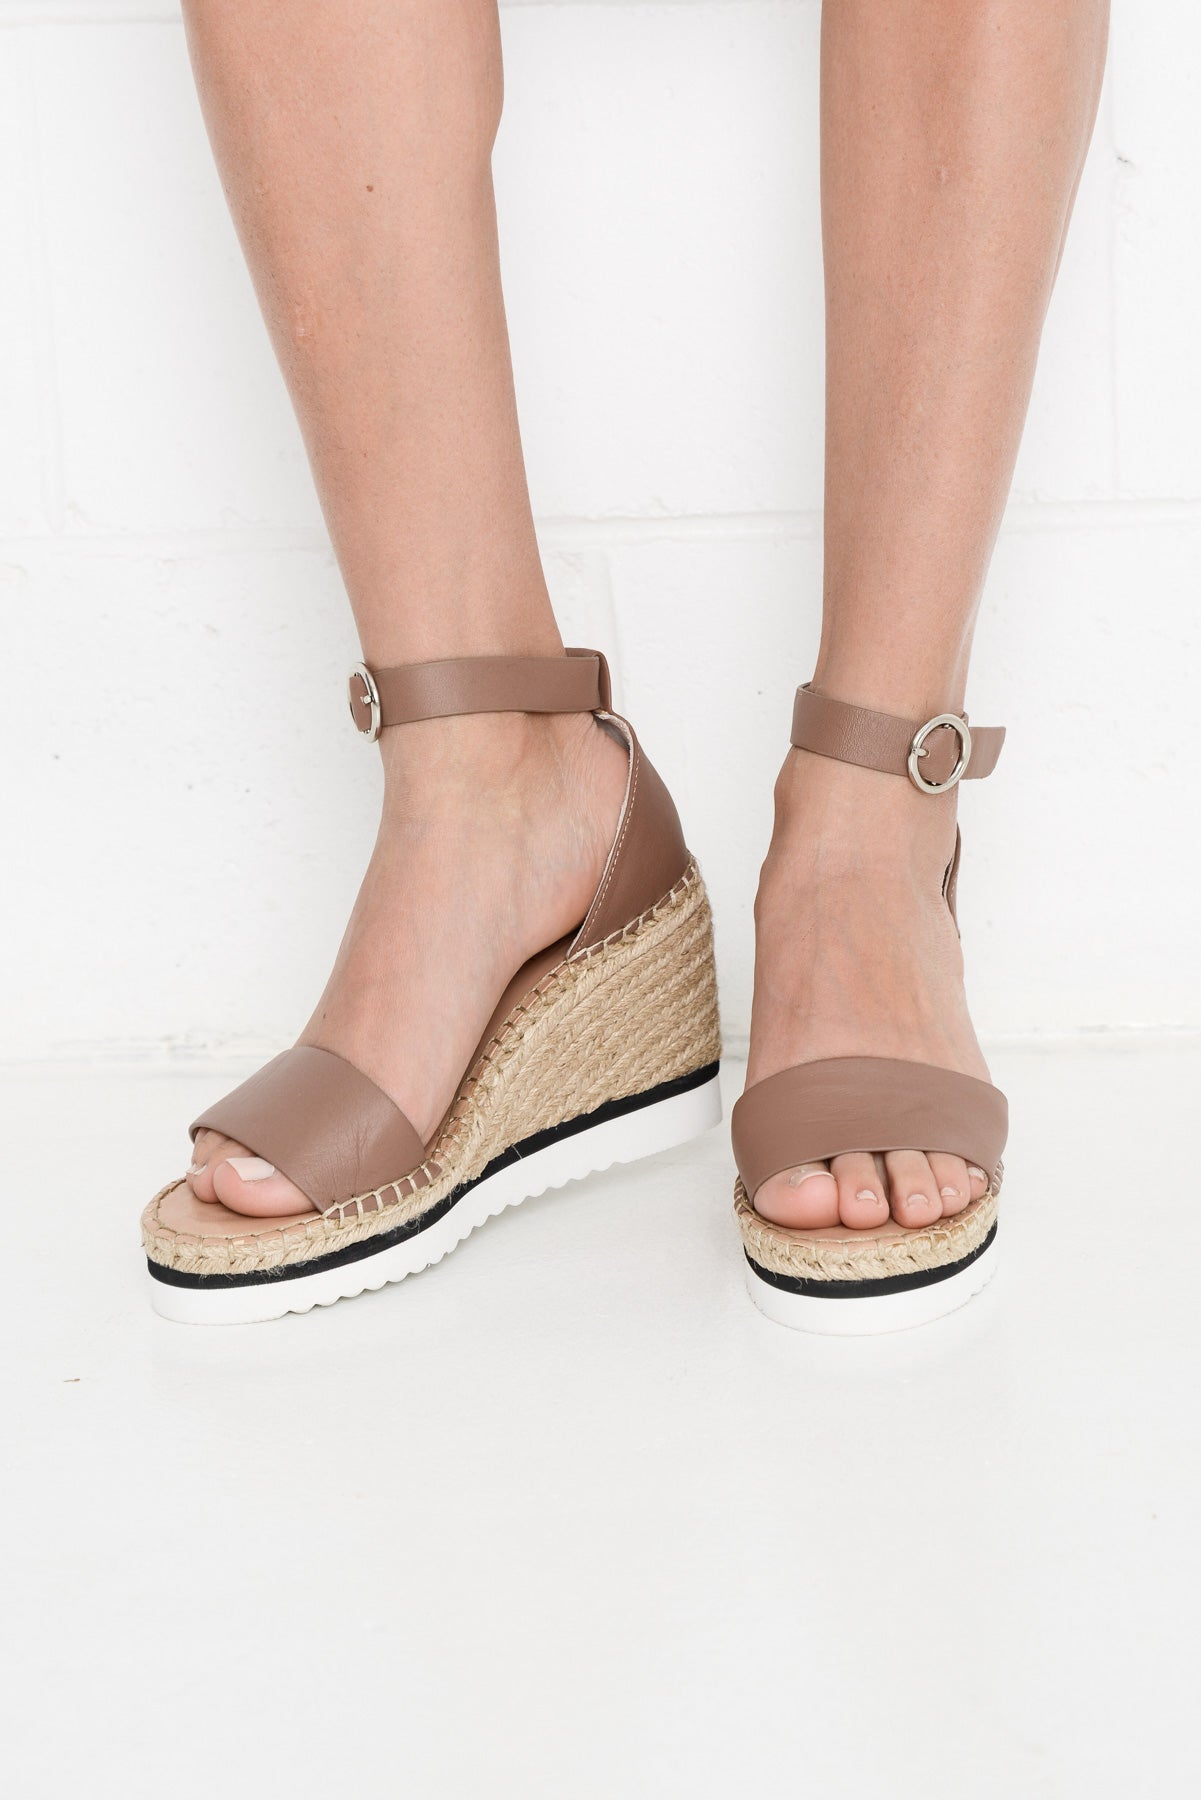 Folk Leather Taupe Wedge Heel - Blue Bungalow